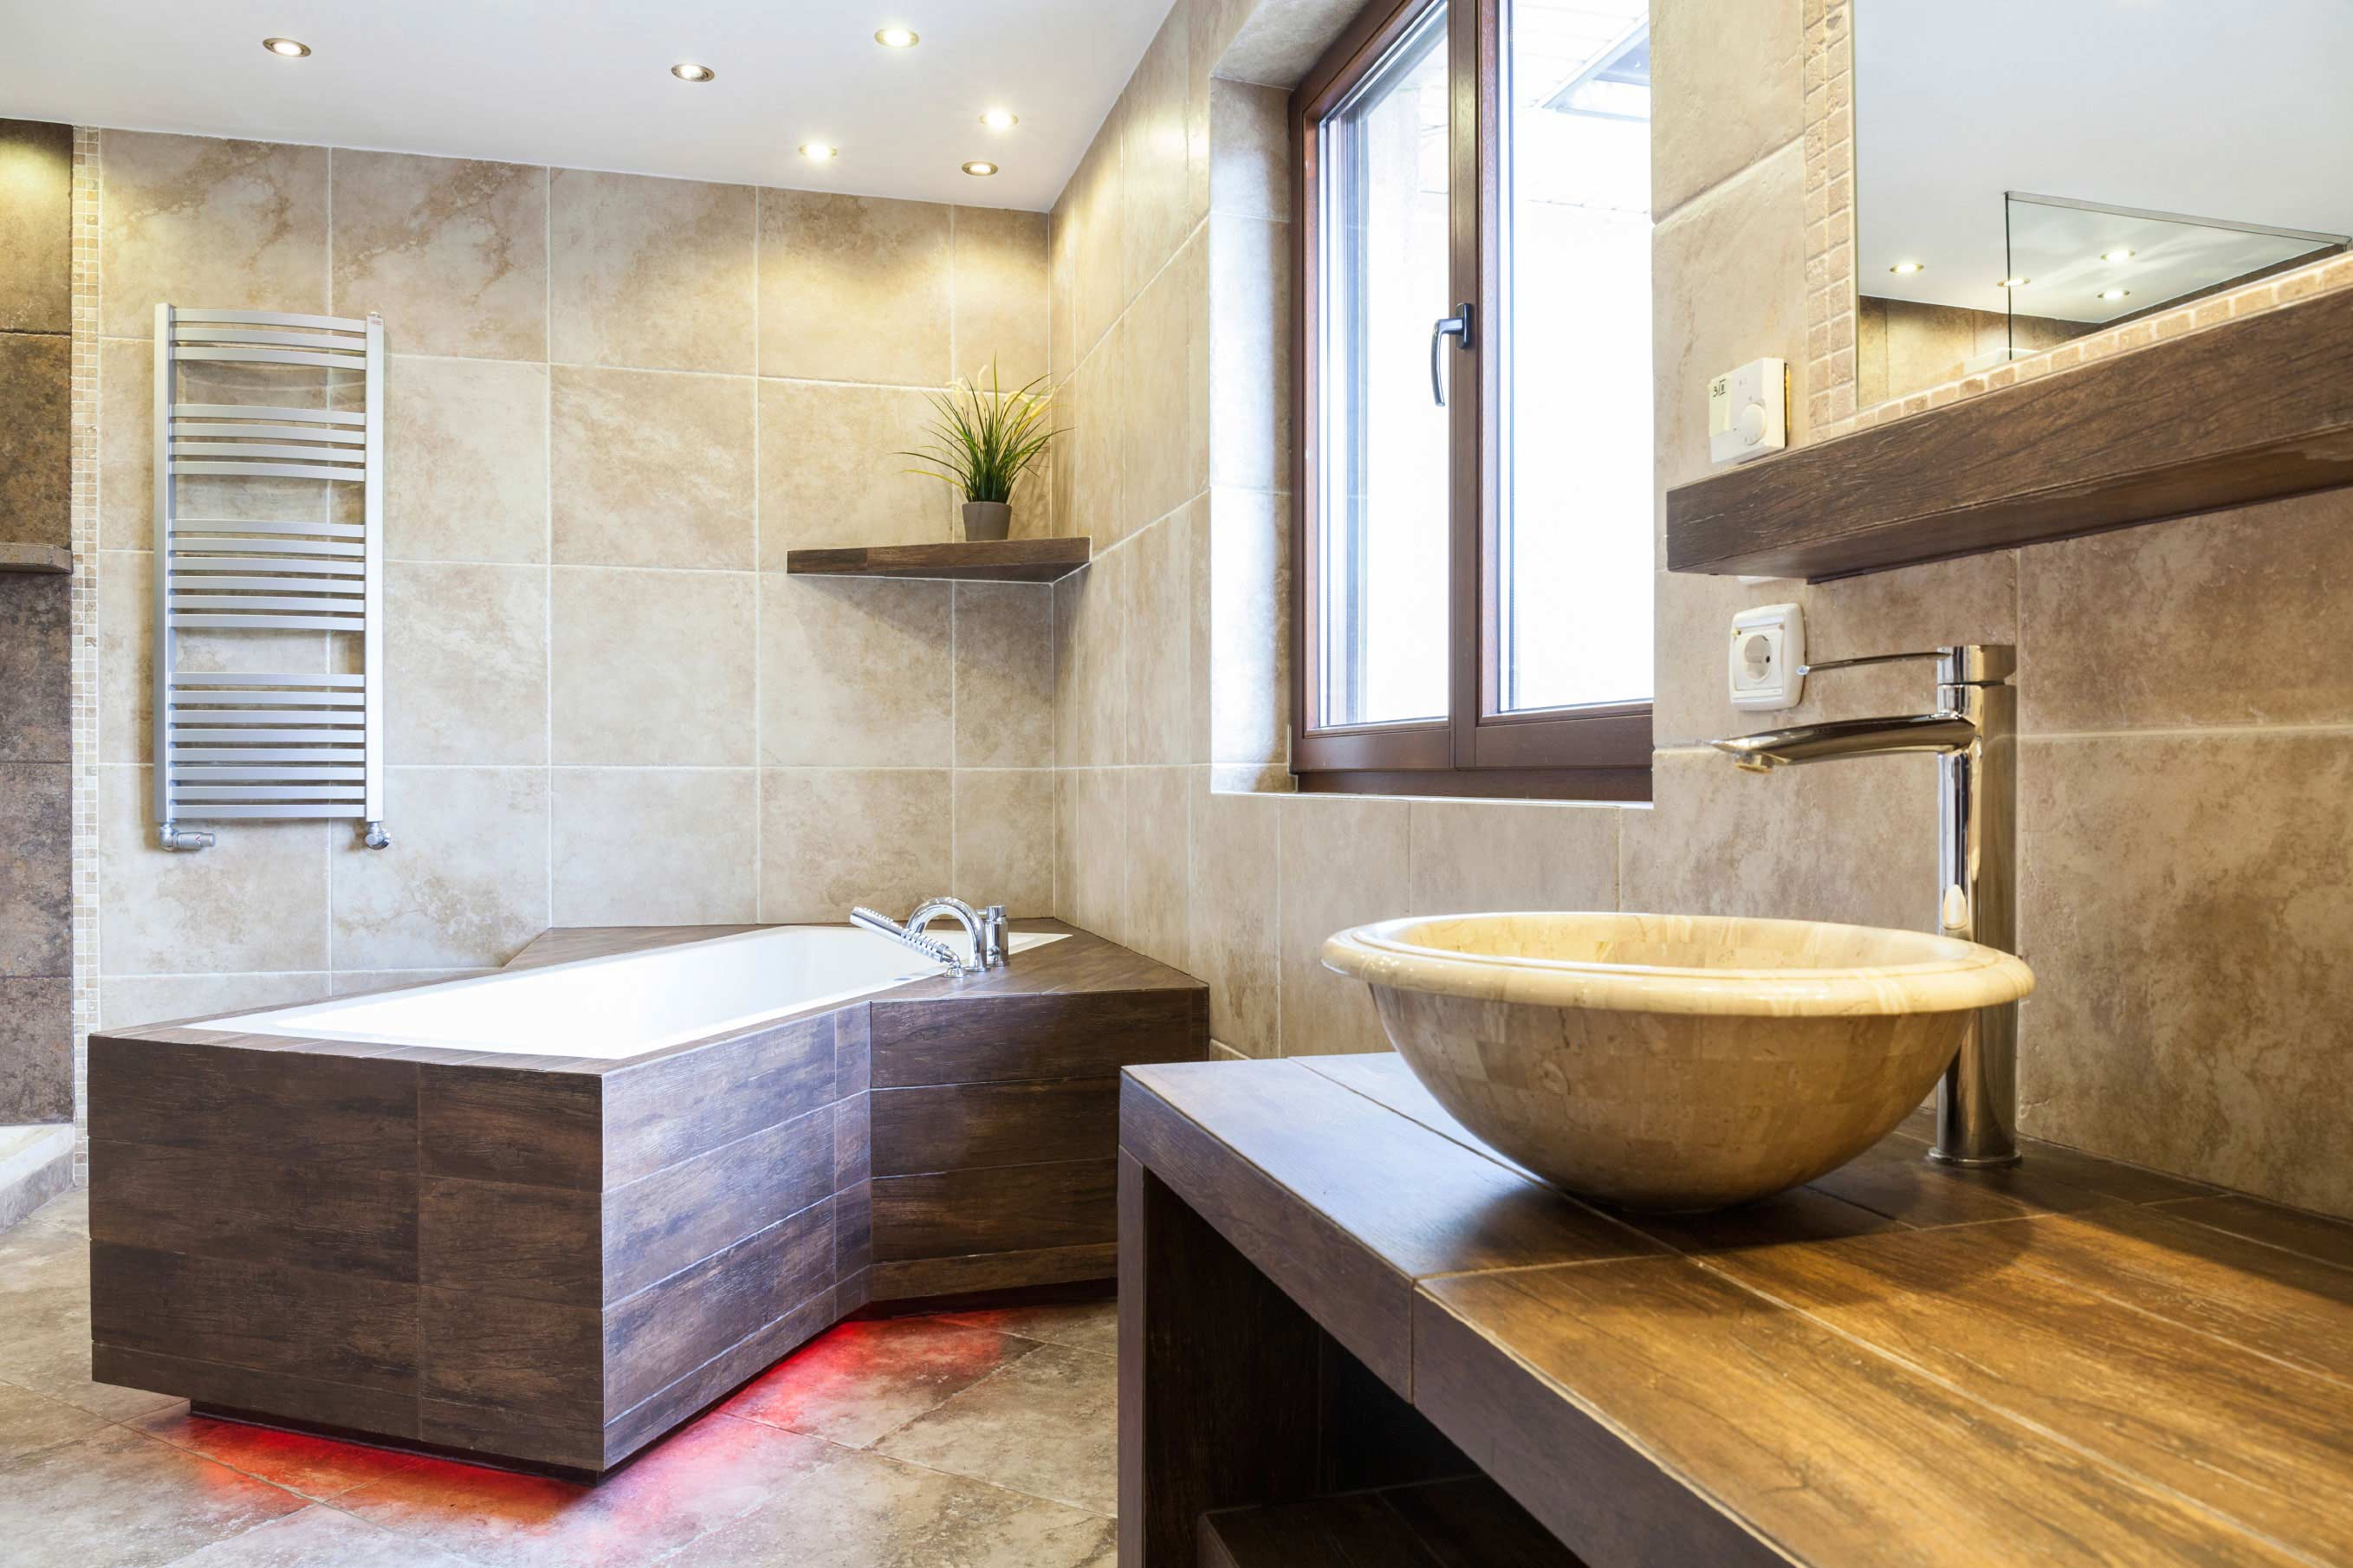 How Much Does A Bathroom Renovation Cost Hipages Com Au